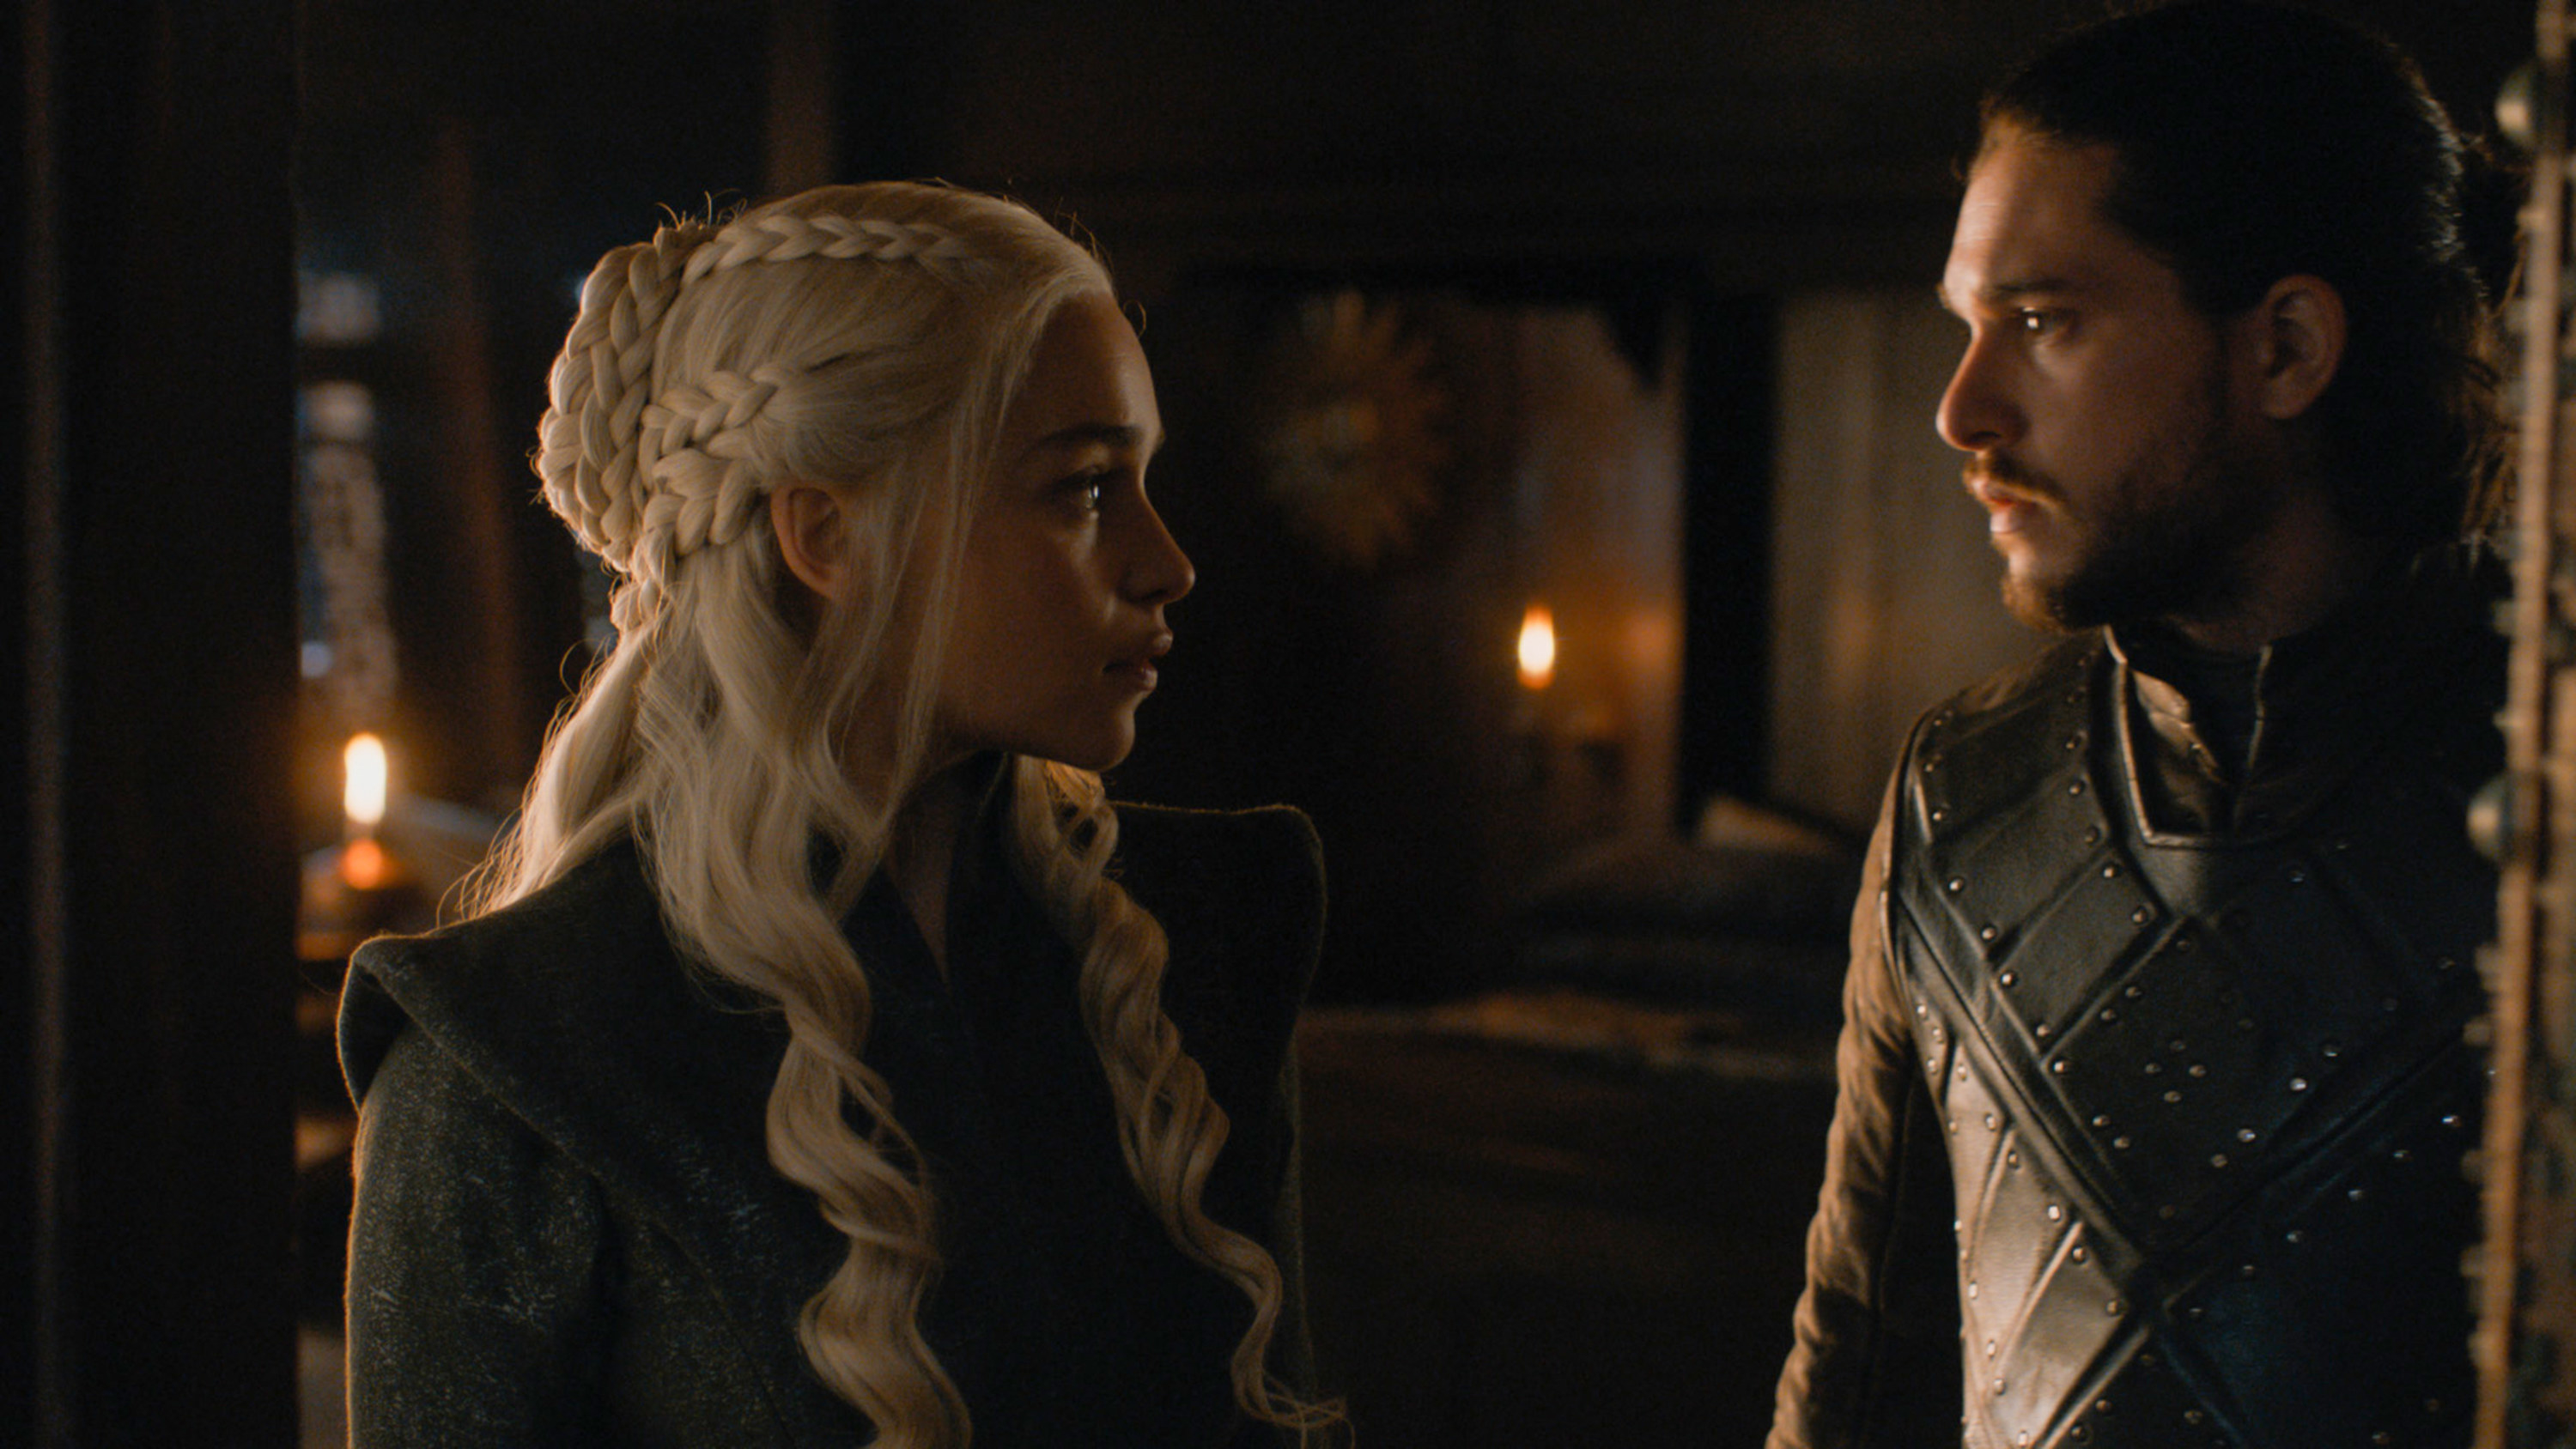 Still from Game of Thrones: Jon Snow and Daenerys look at each other at the entrance to her bed chambers